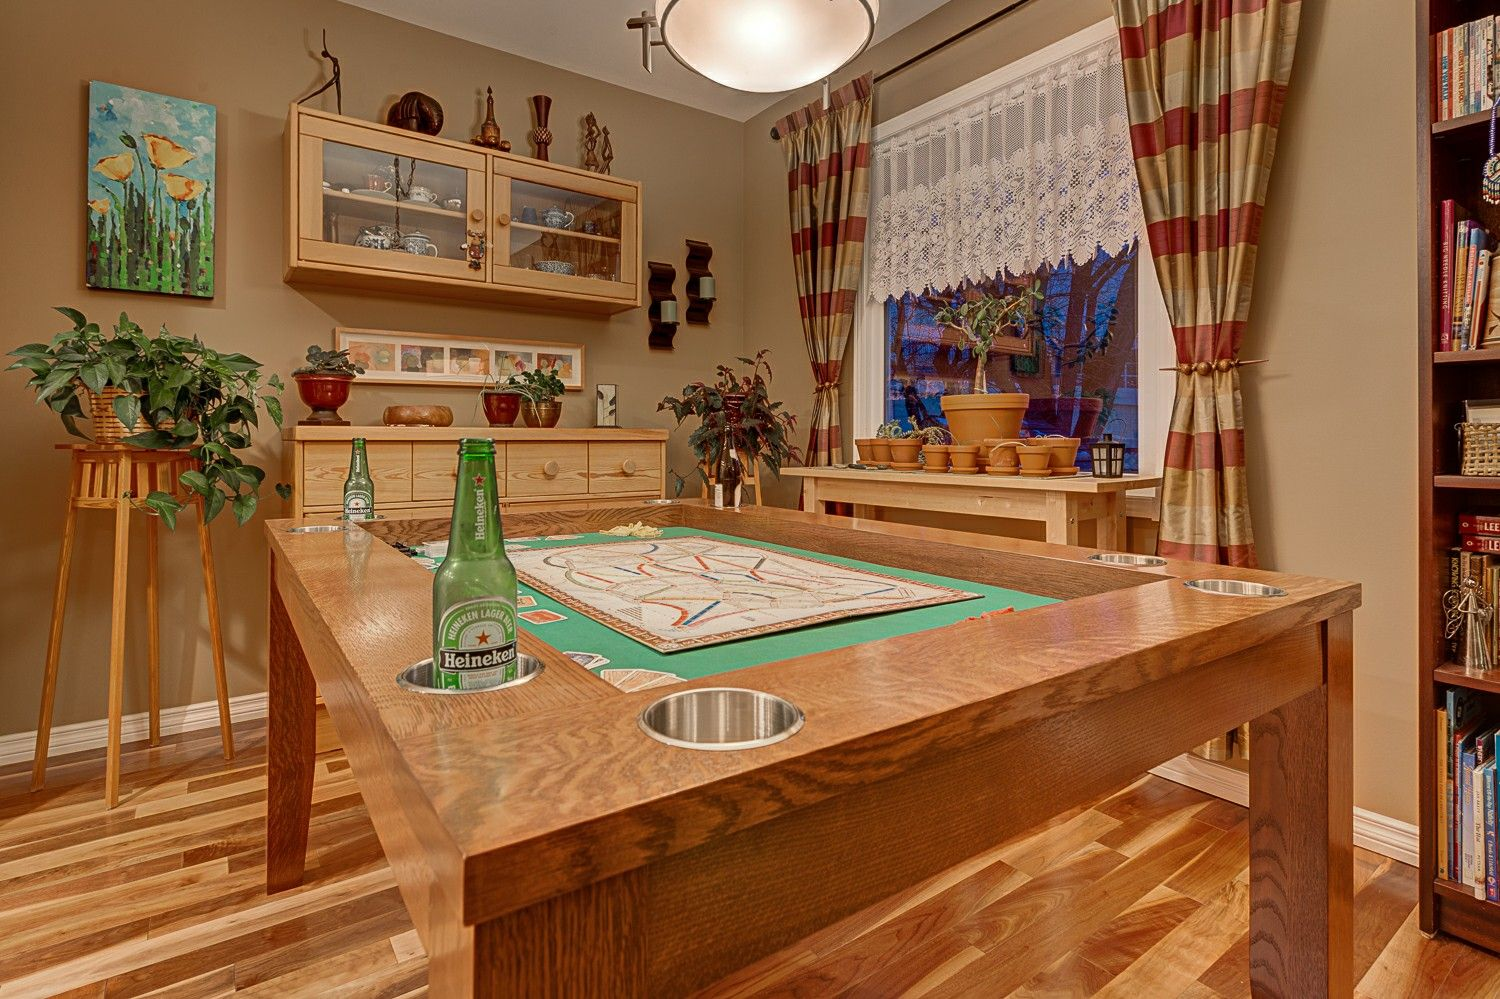 Pin By Wheatland Woodwork On Board Game Tables Board Game Table